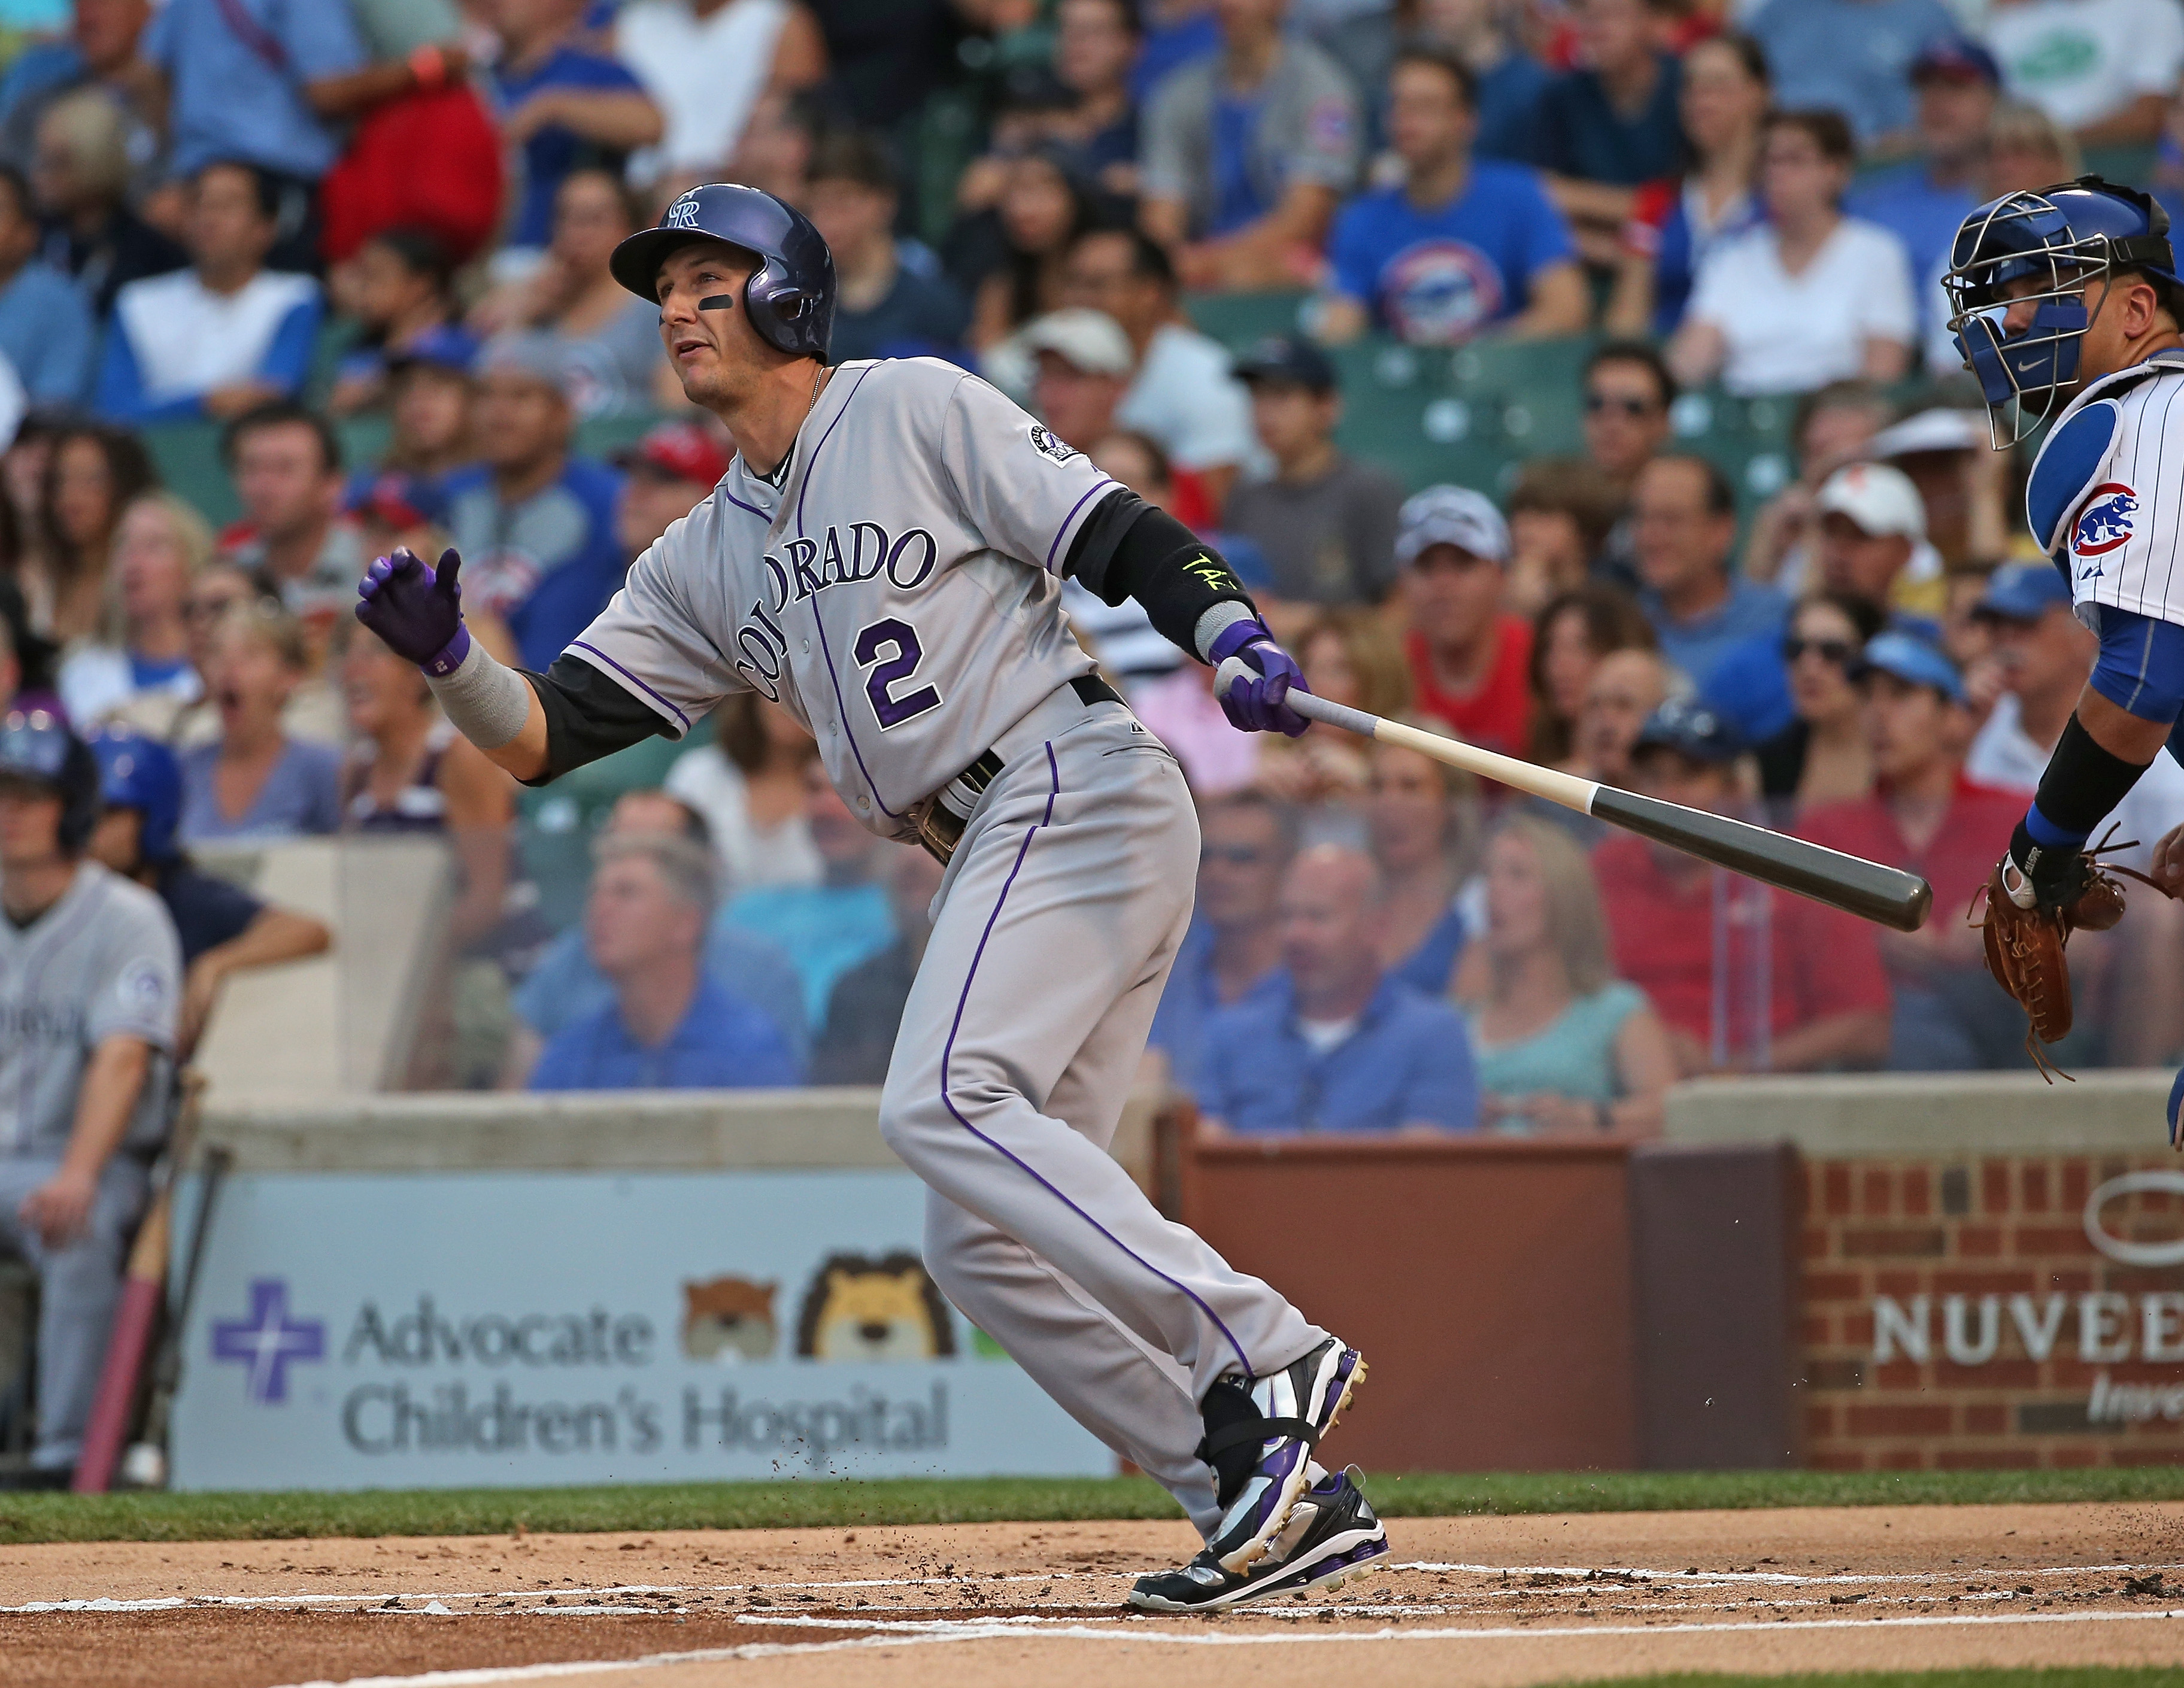 Where will Troy Tulowitzki land on our list of most-read posts?